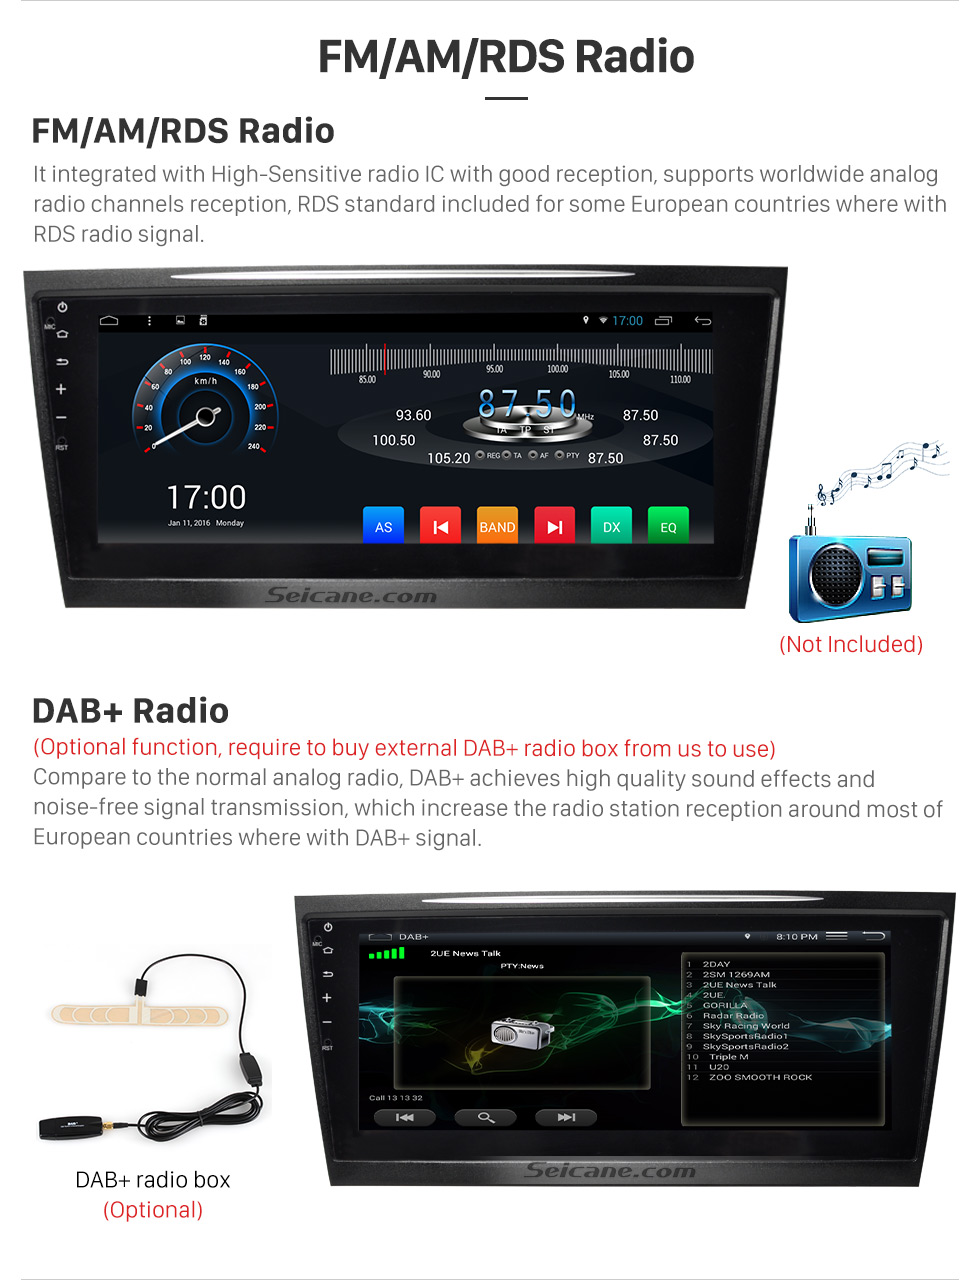 5 Point Touch Screen  10.3 Inch HD 1024*600 Android 6.0 2017 Subaru Legacy OUTBACK Radio Bluetooth GPS Navigation Car Stereo with 1080P Video Radio Receiver Mirror Link TPMS 3G Wifi Steering Wheel Control